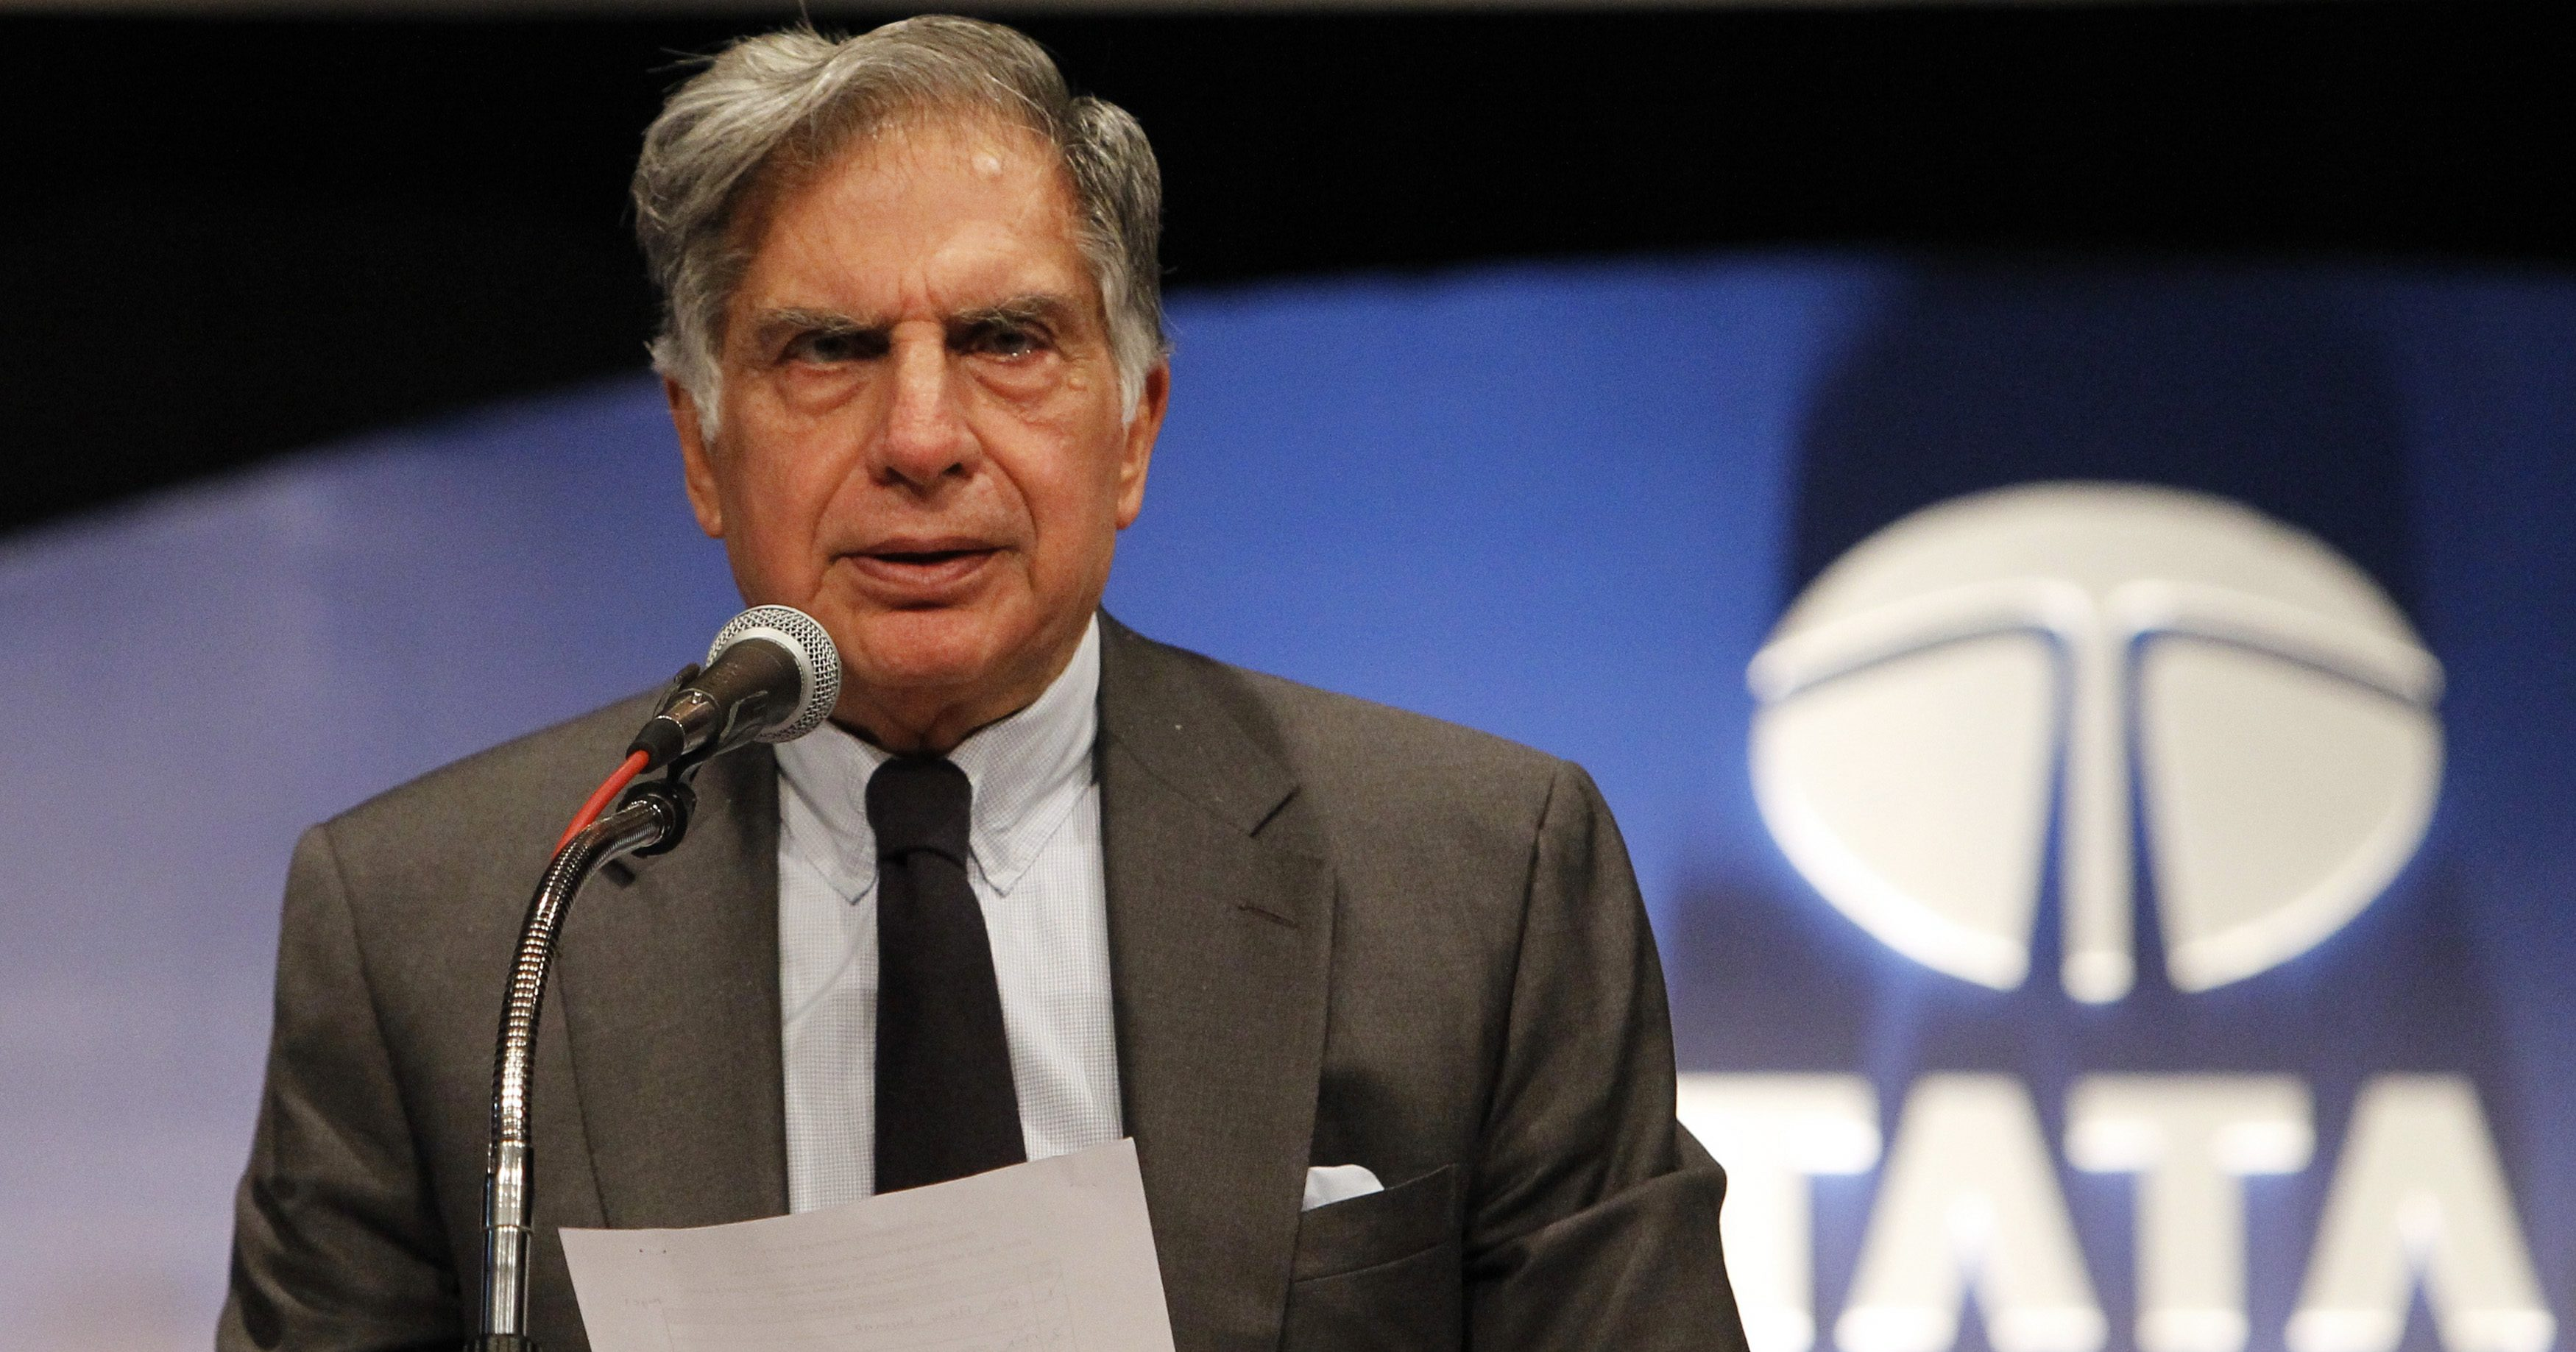 Ratan Tata can't help mentoring entrepreneurs even on Instagram